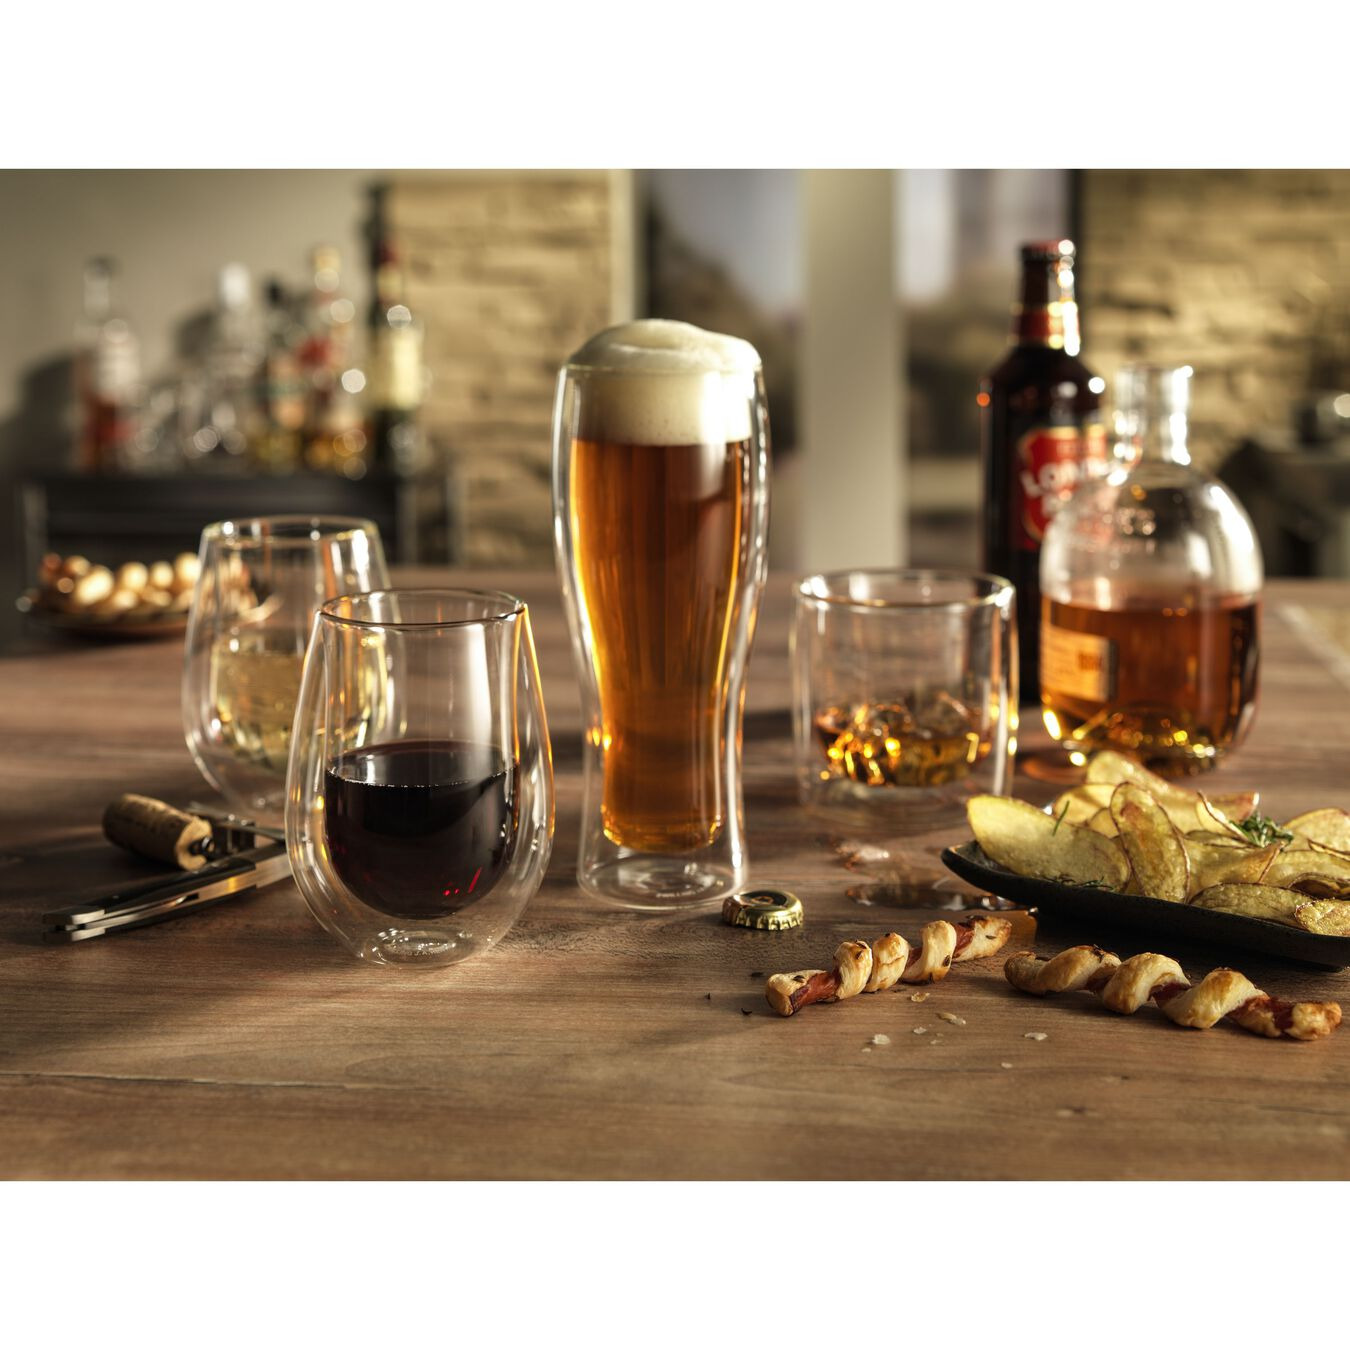 Bier Glas, 2-er Set 400 ml,,large 3